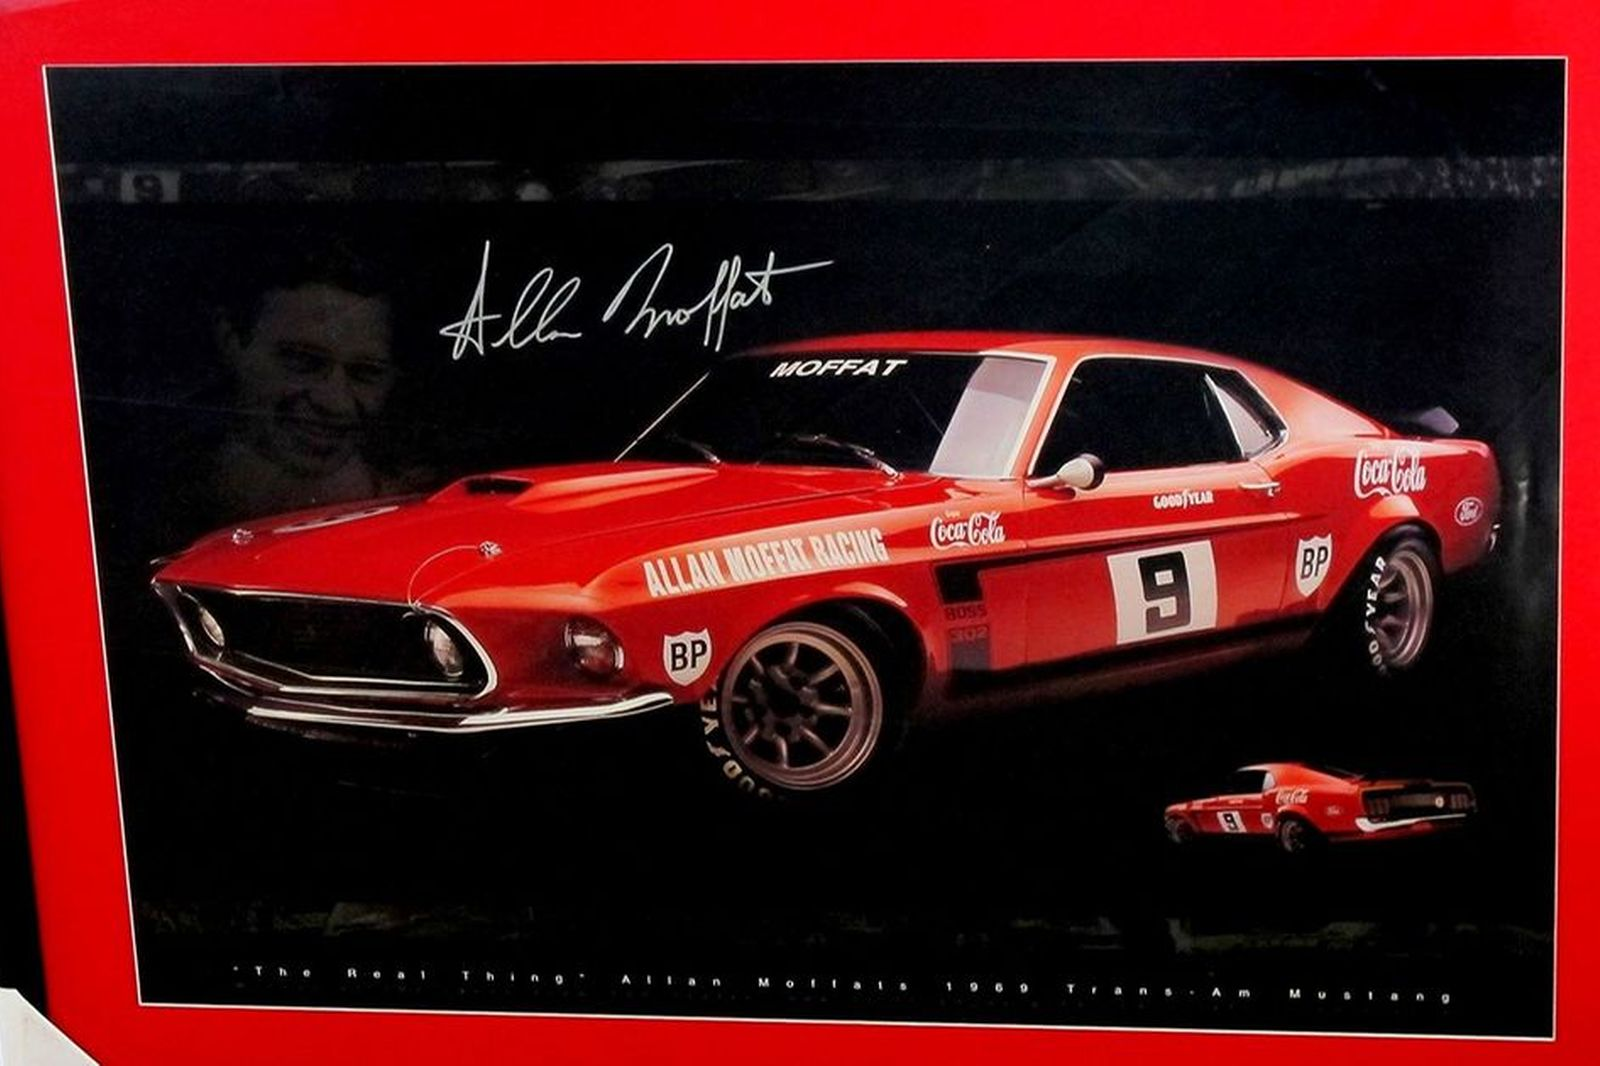 Framed Signed Print - Allan Moffat's 1969 Trams Am Mustang (100 x 75cm)